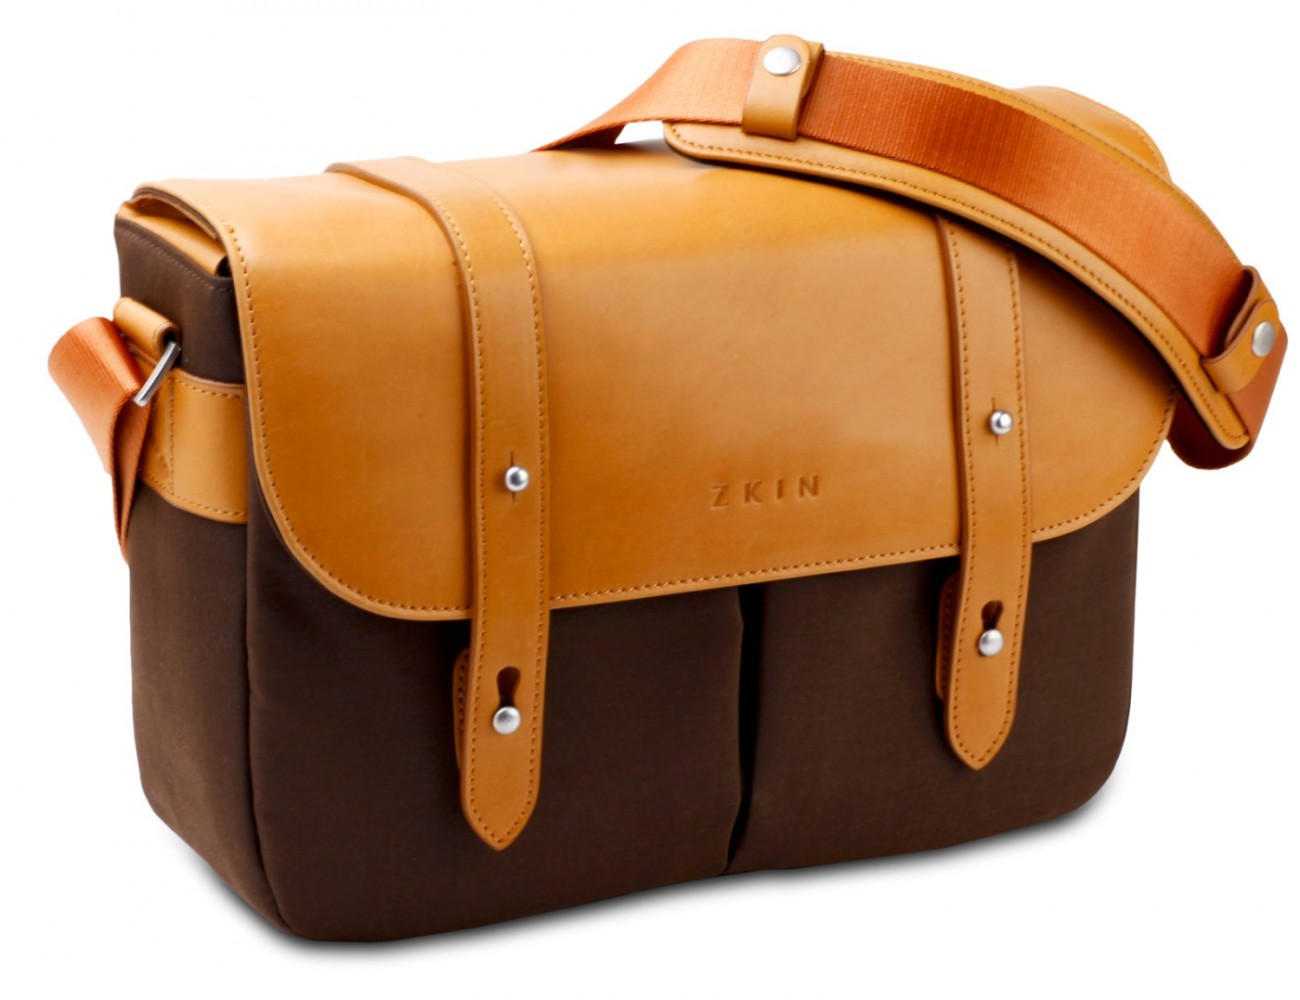 Zkin Shoulder Bag - Champ (wood brown)